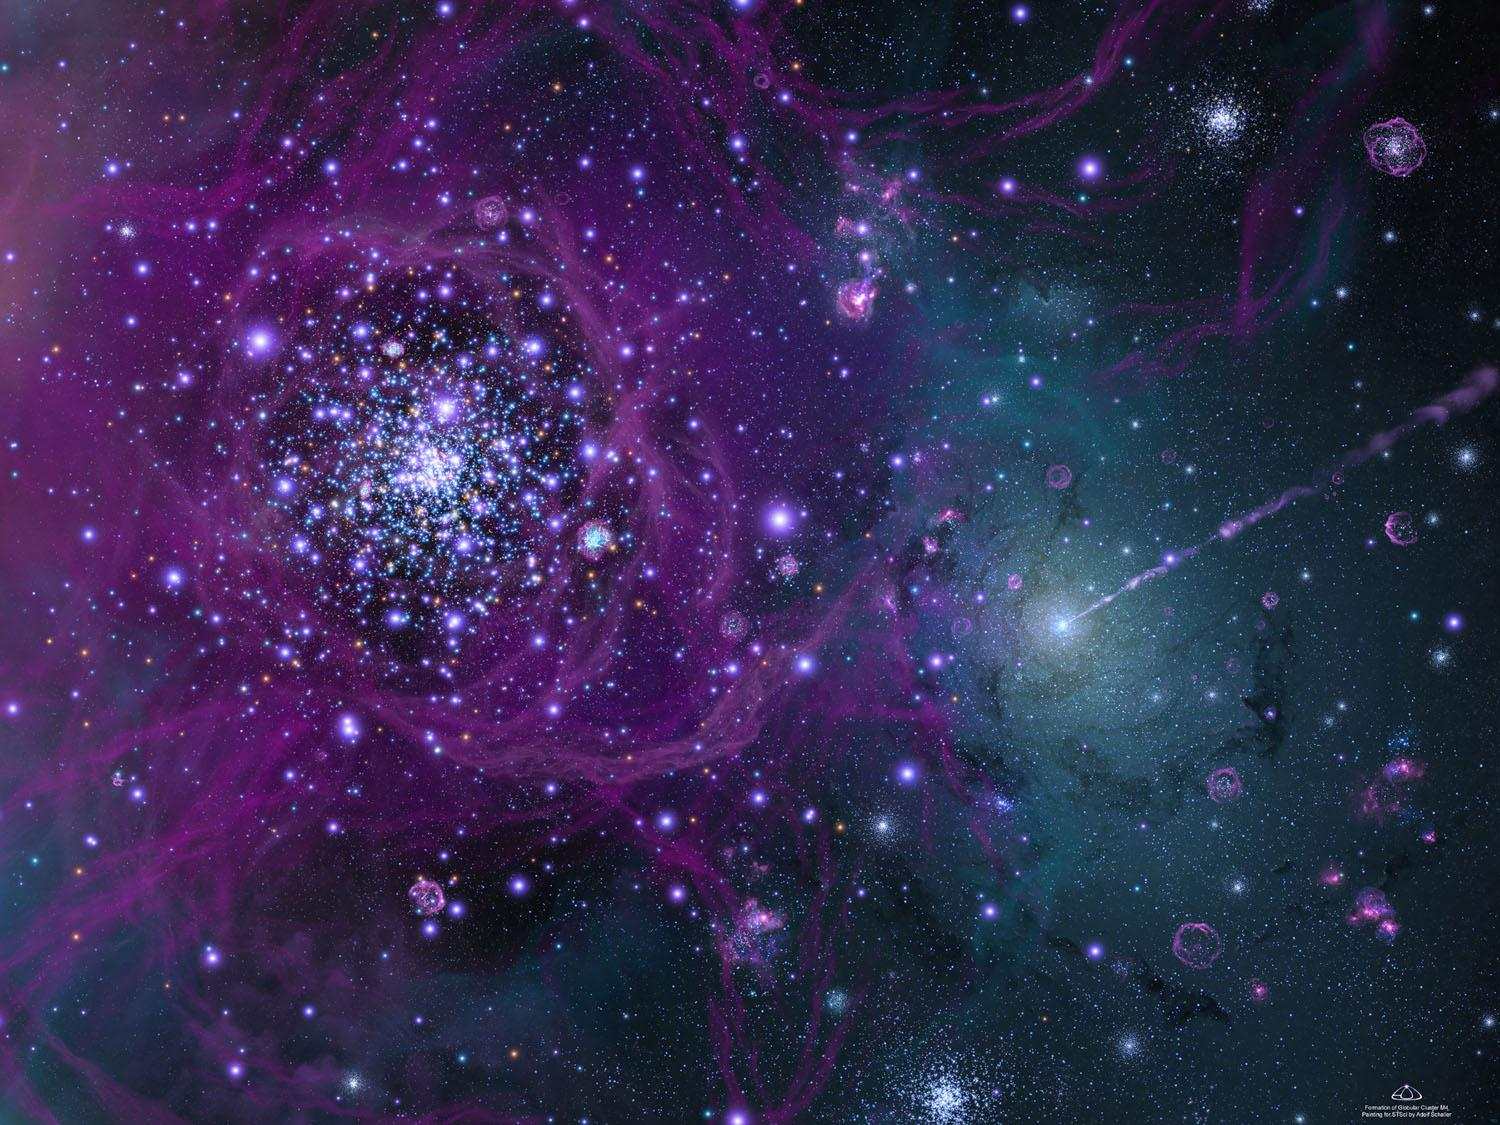 Fondos de Pantalla | Wallpapers: Fondo wallpaper via lactea